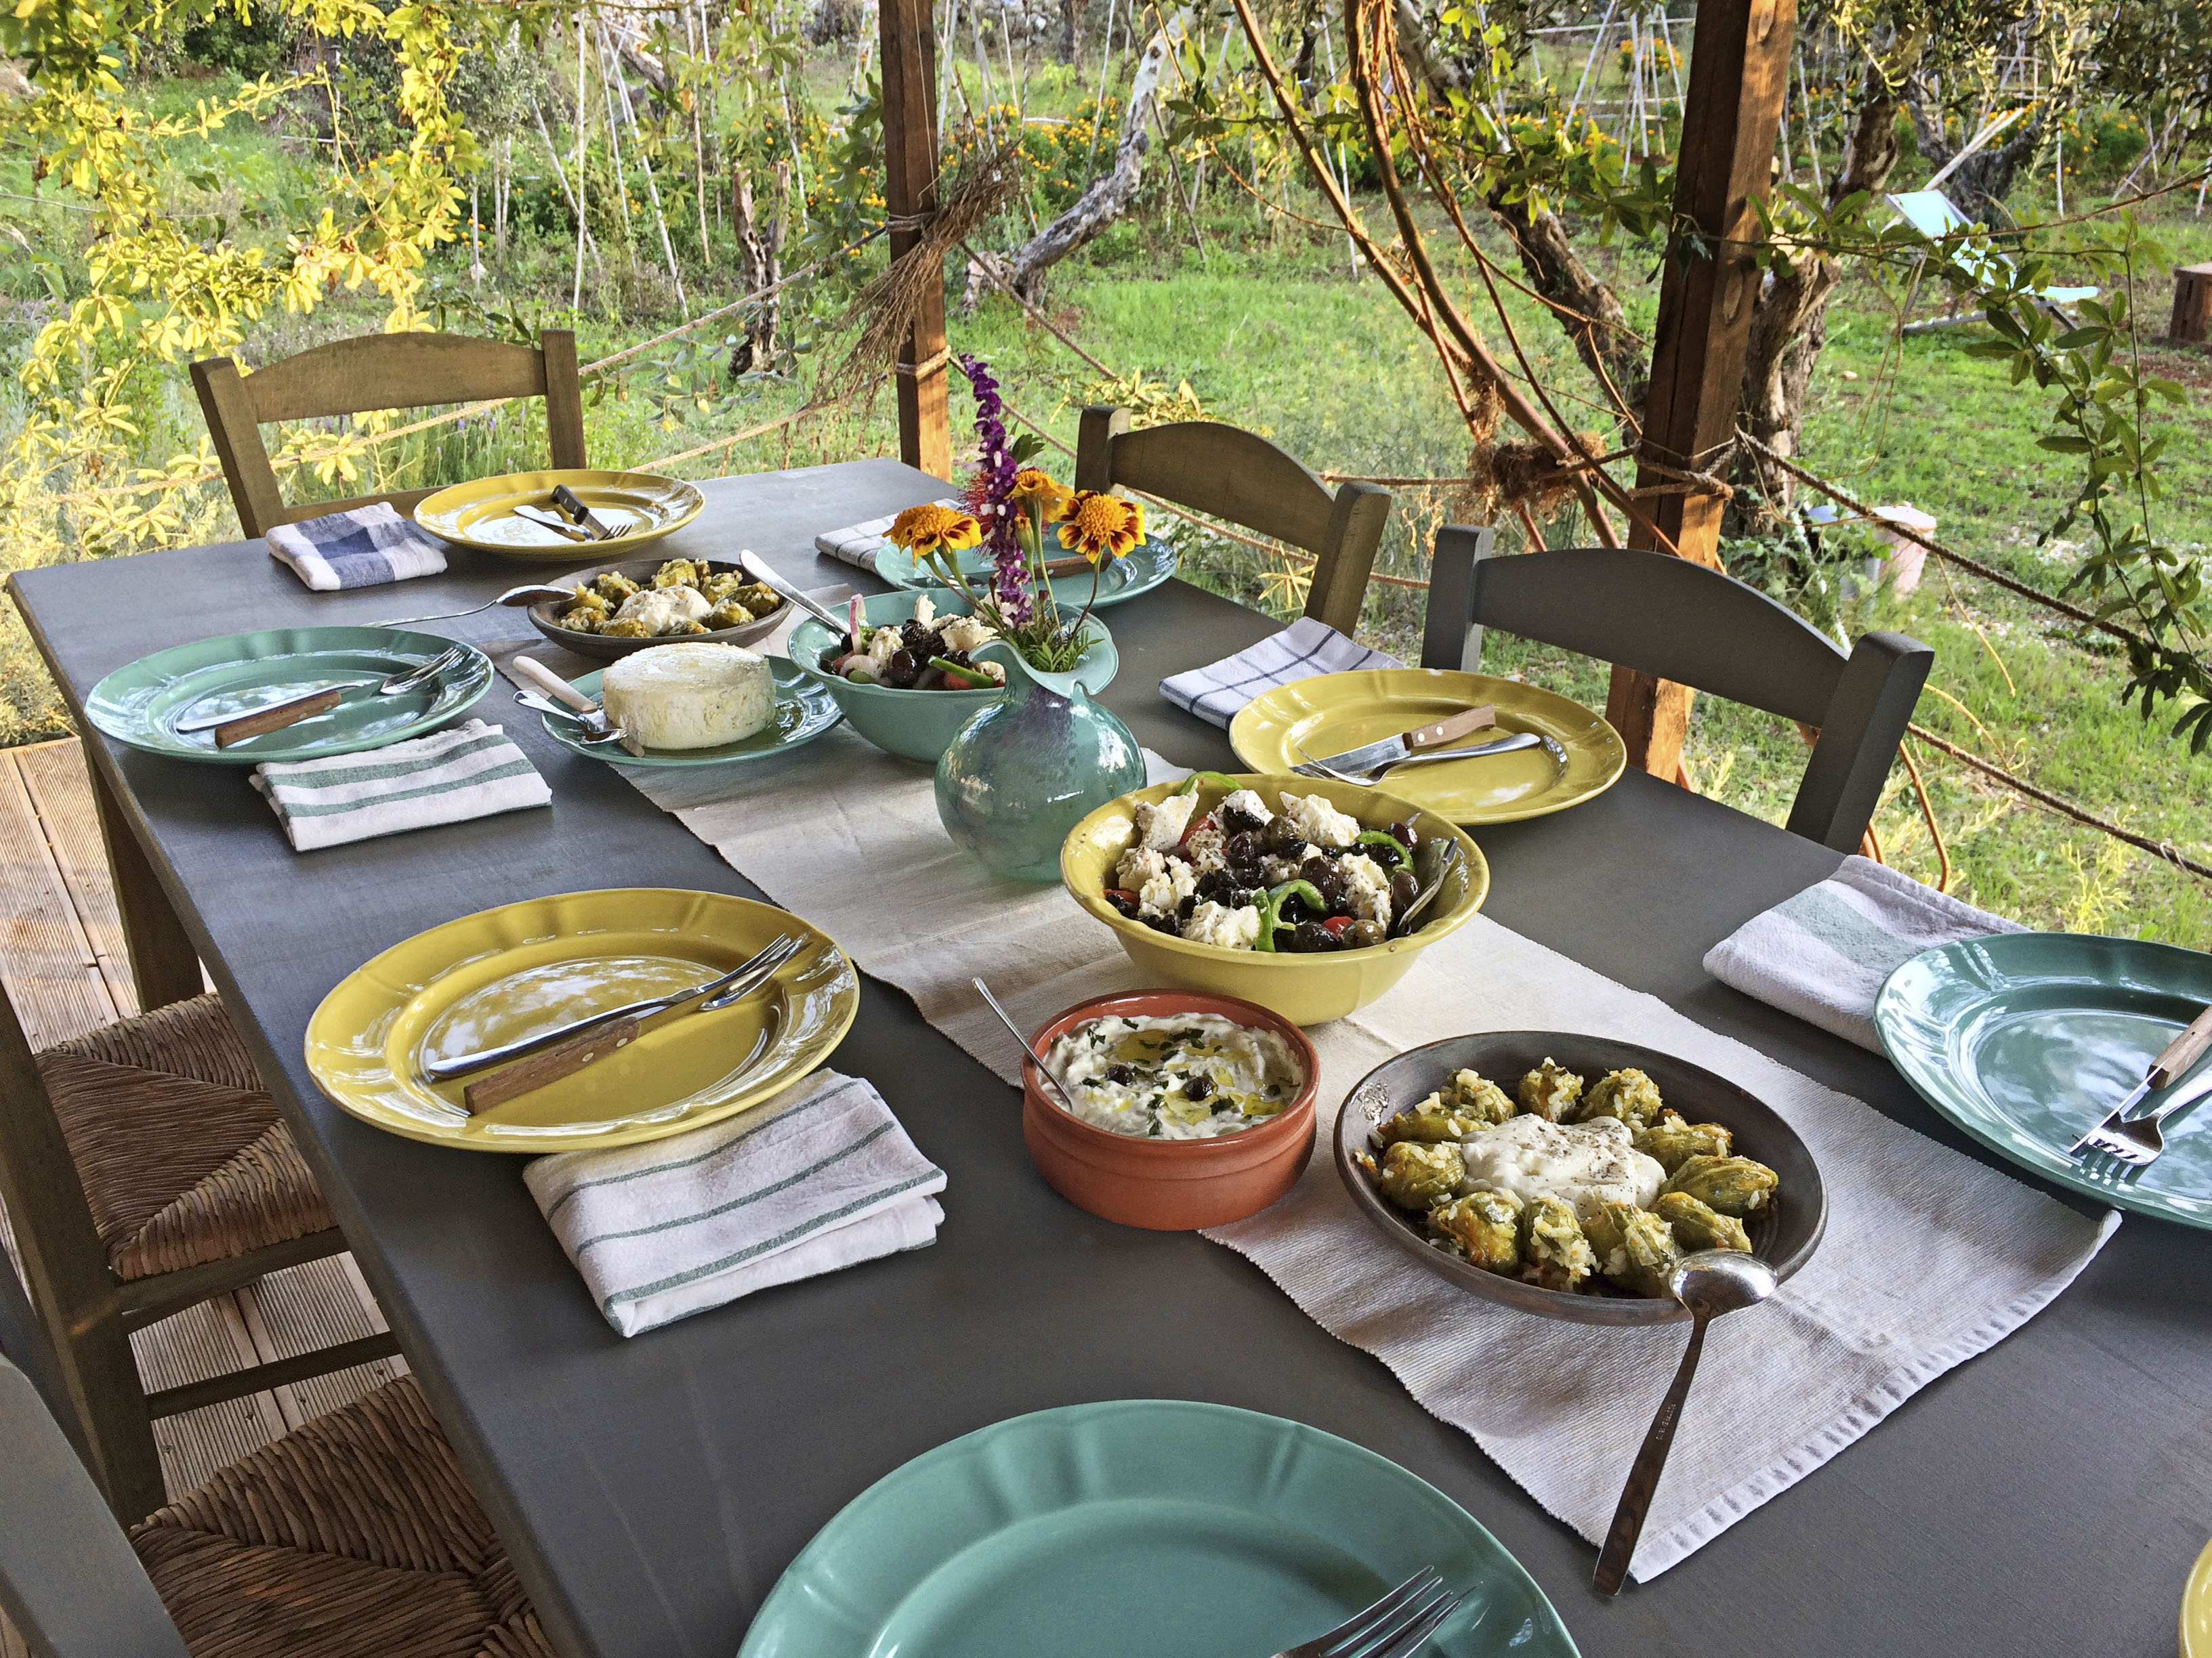 Lunch at a hand picked greece workshop